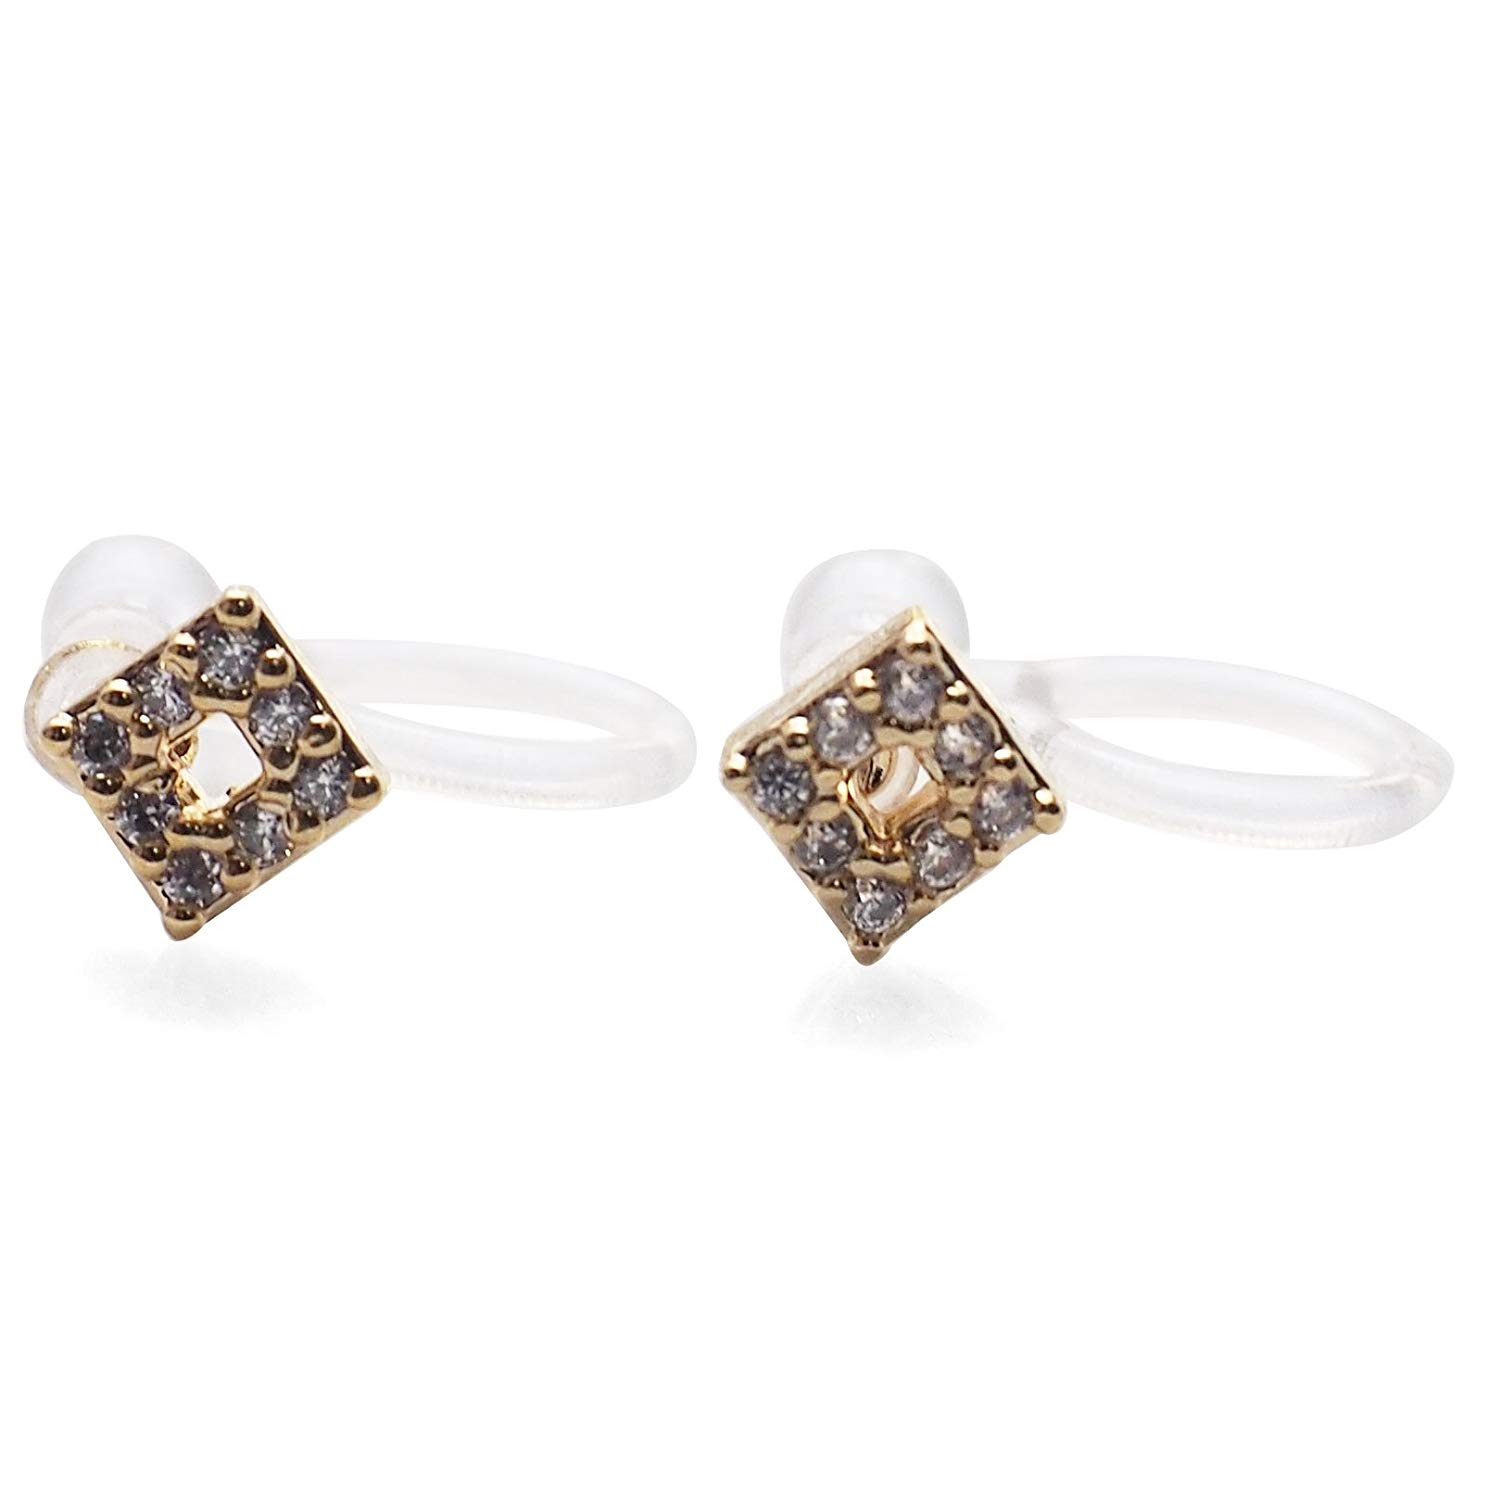 Miyabi Grace Women's Square Minimal Comfortable Simple Cubic Zirconia Crystal Invisible Clip On Stud Earrings Gold tone